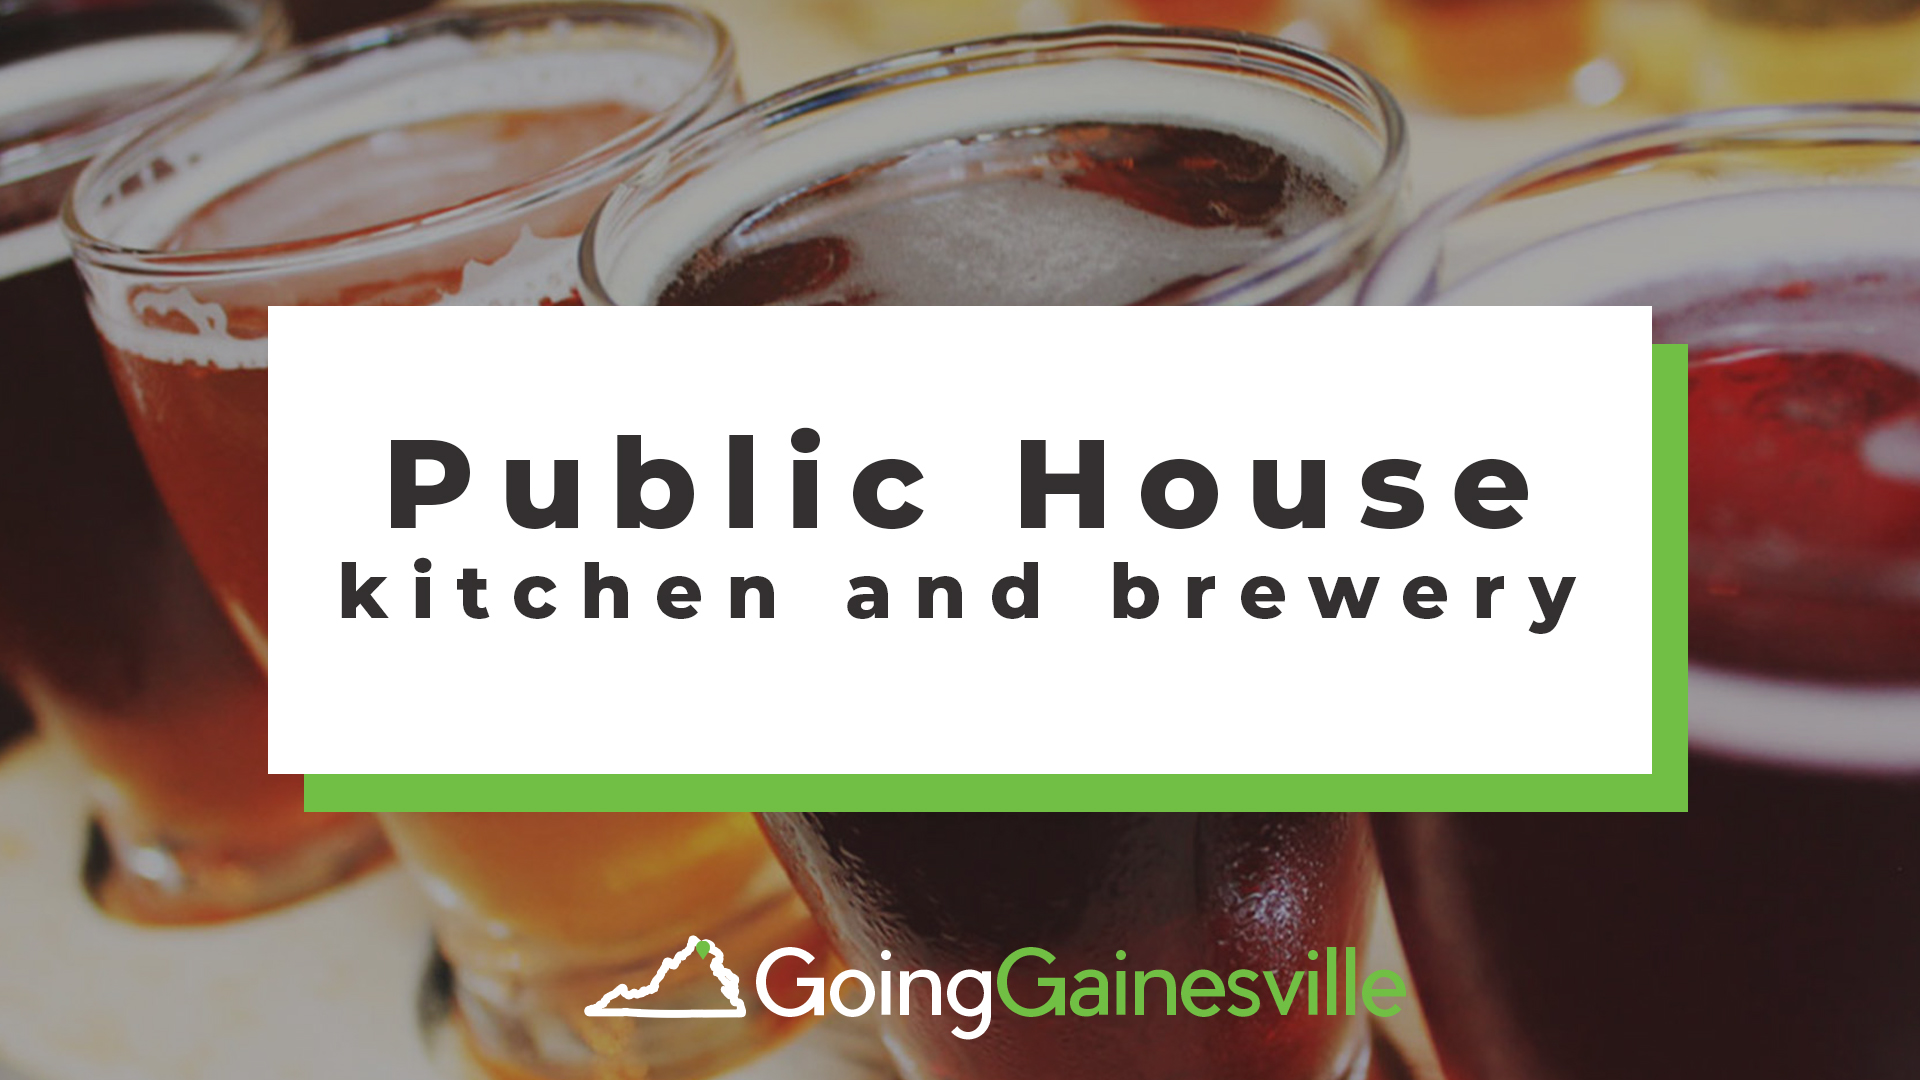 Public House Kitchen & Brewery